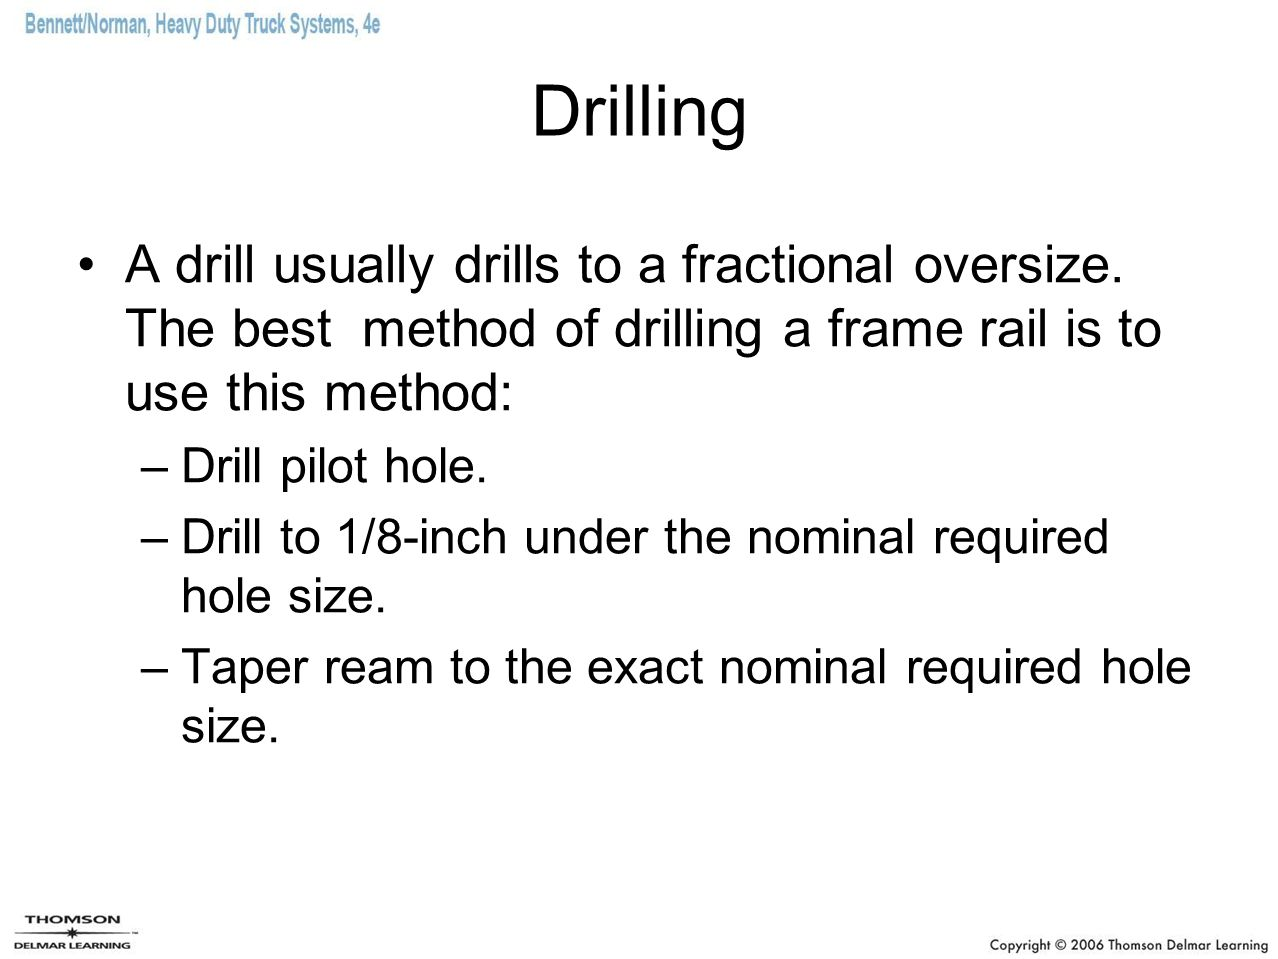 Drilling A drill usually drills to a fractional oversize. The best method of drilling a frame rail is to use this method: –Drill pilot hole. –Drill to